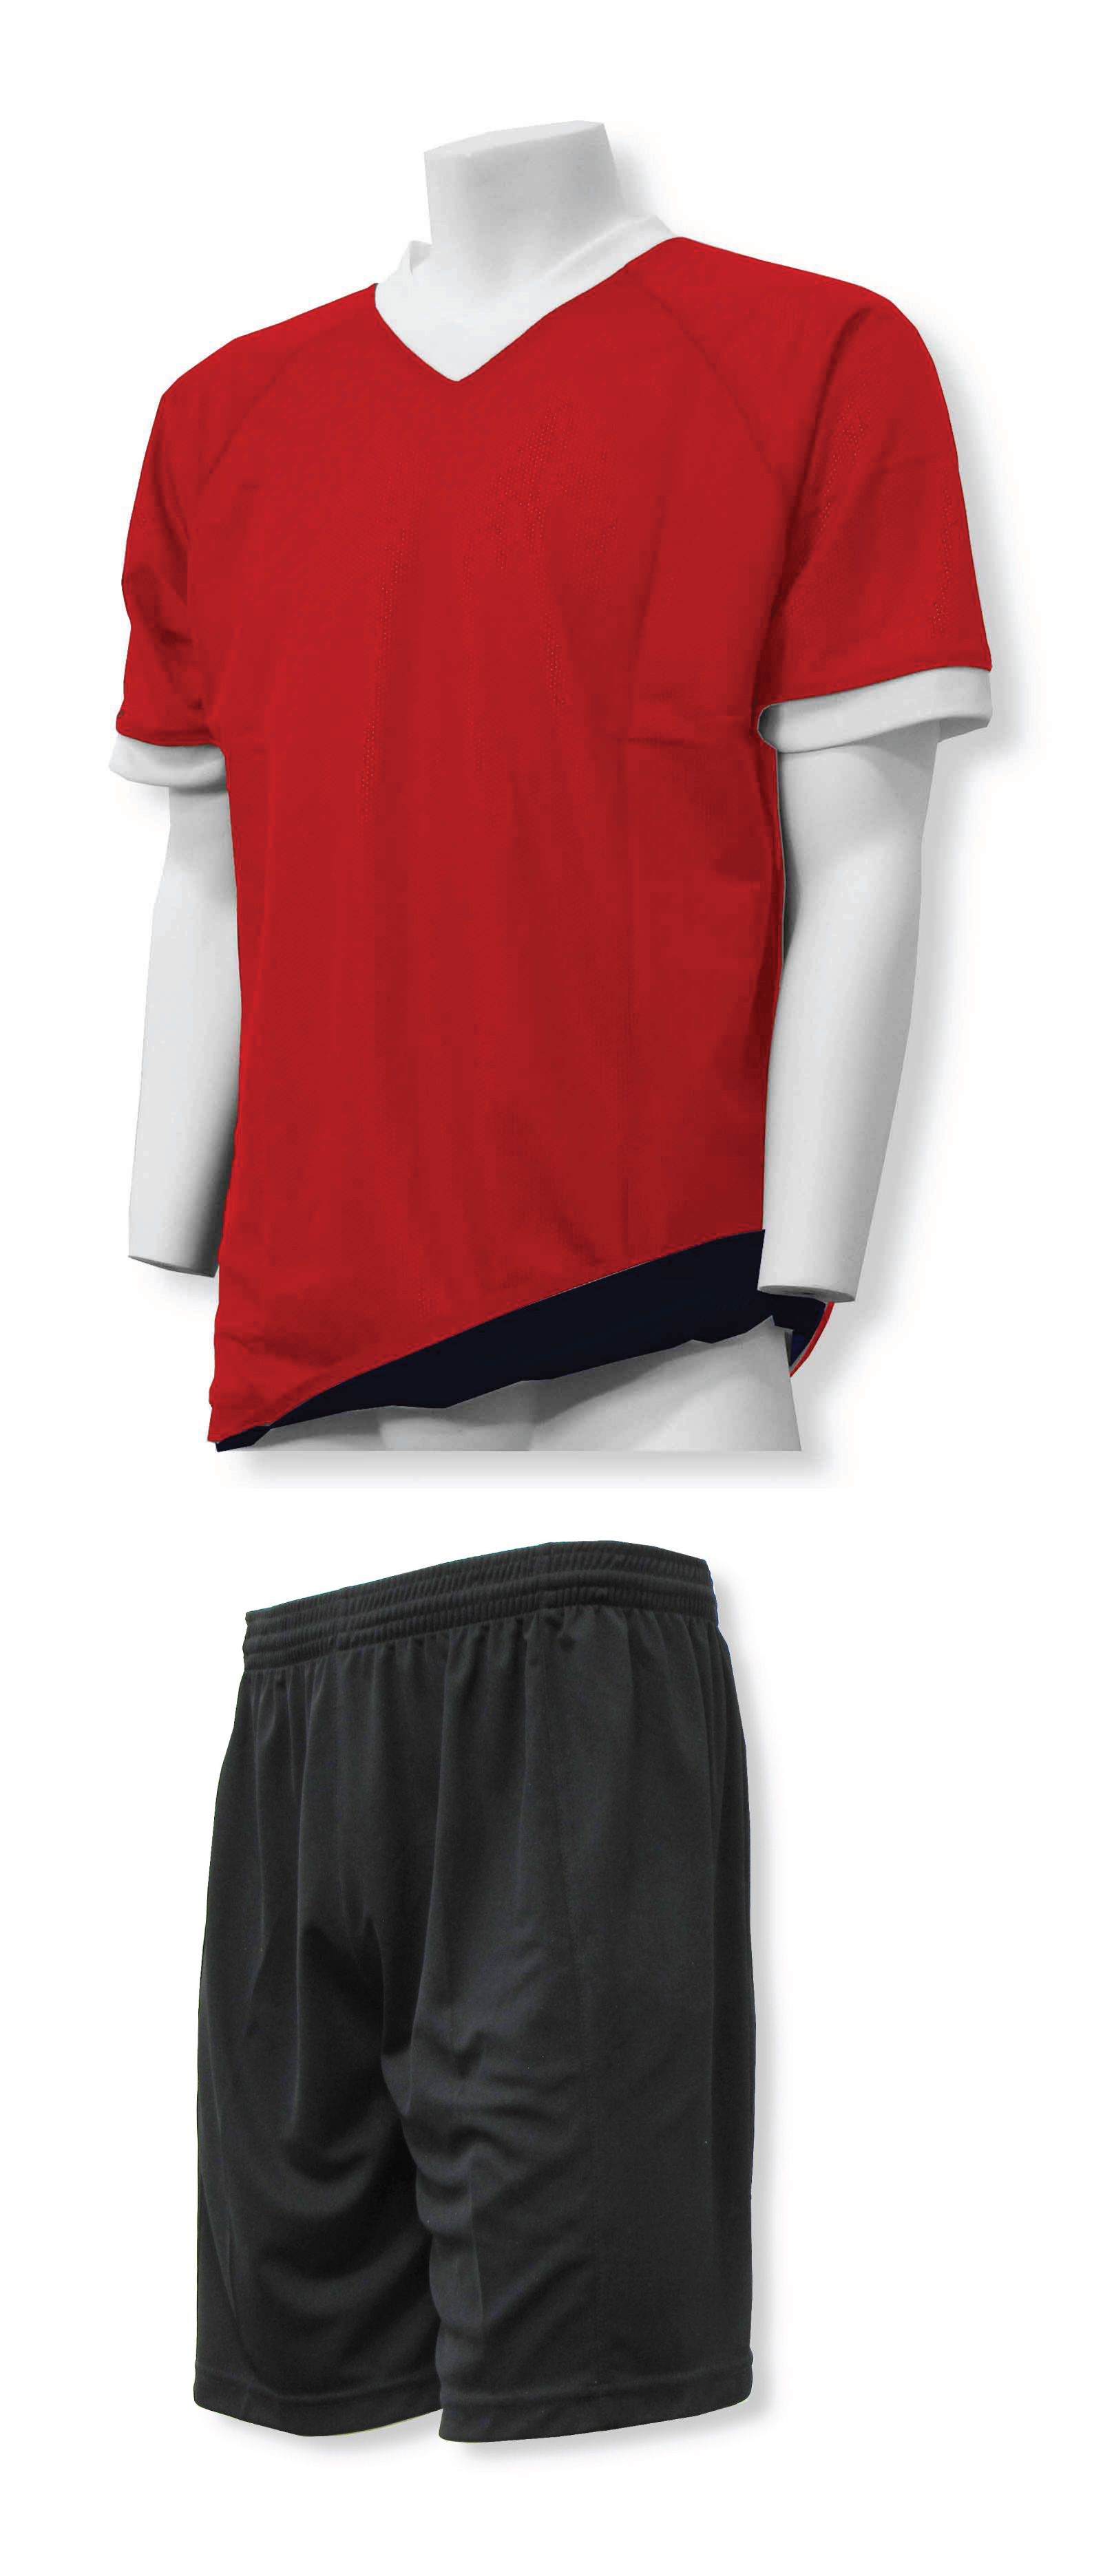 Reversible sports uniform in red/black with black shorts by Code Four Athletics